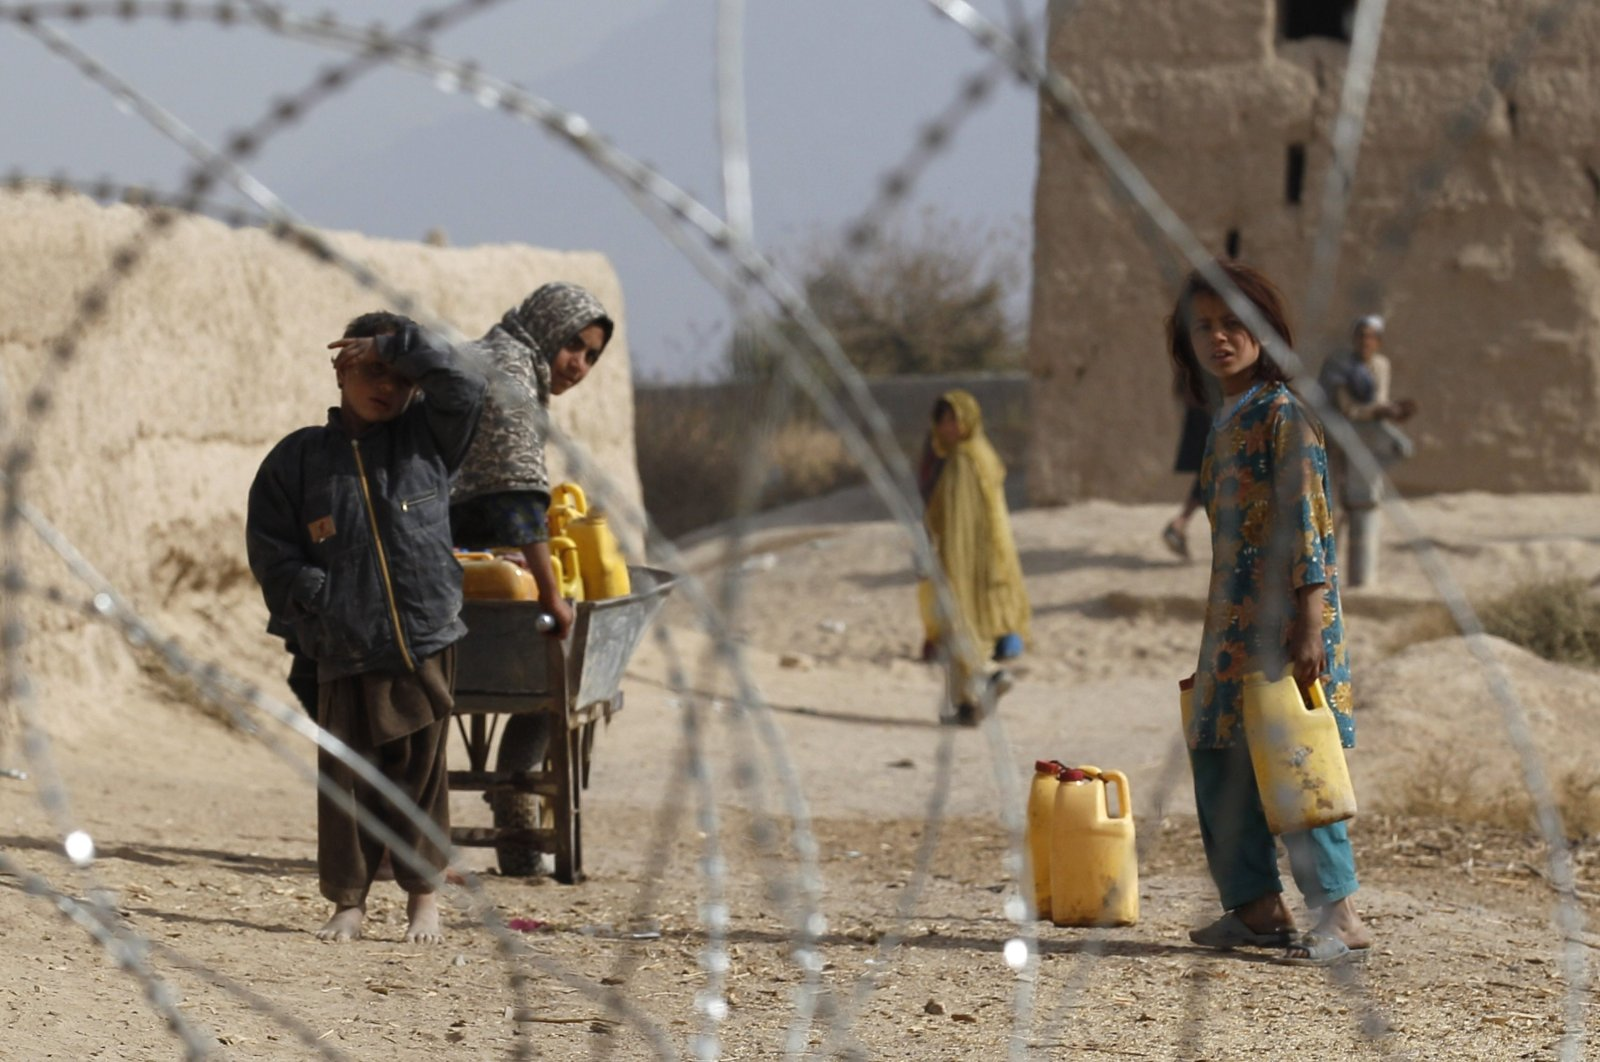 Afghan children look from behind razor wire at an outpost in Zhari district in Kandahar province, Afghanistan, Nov. 20, 2010. (Reuters Photo)